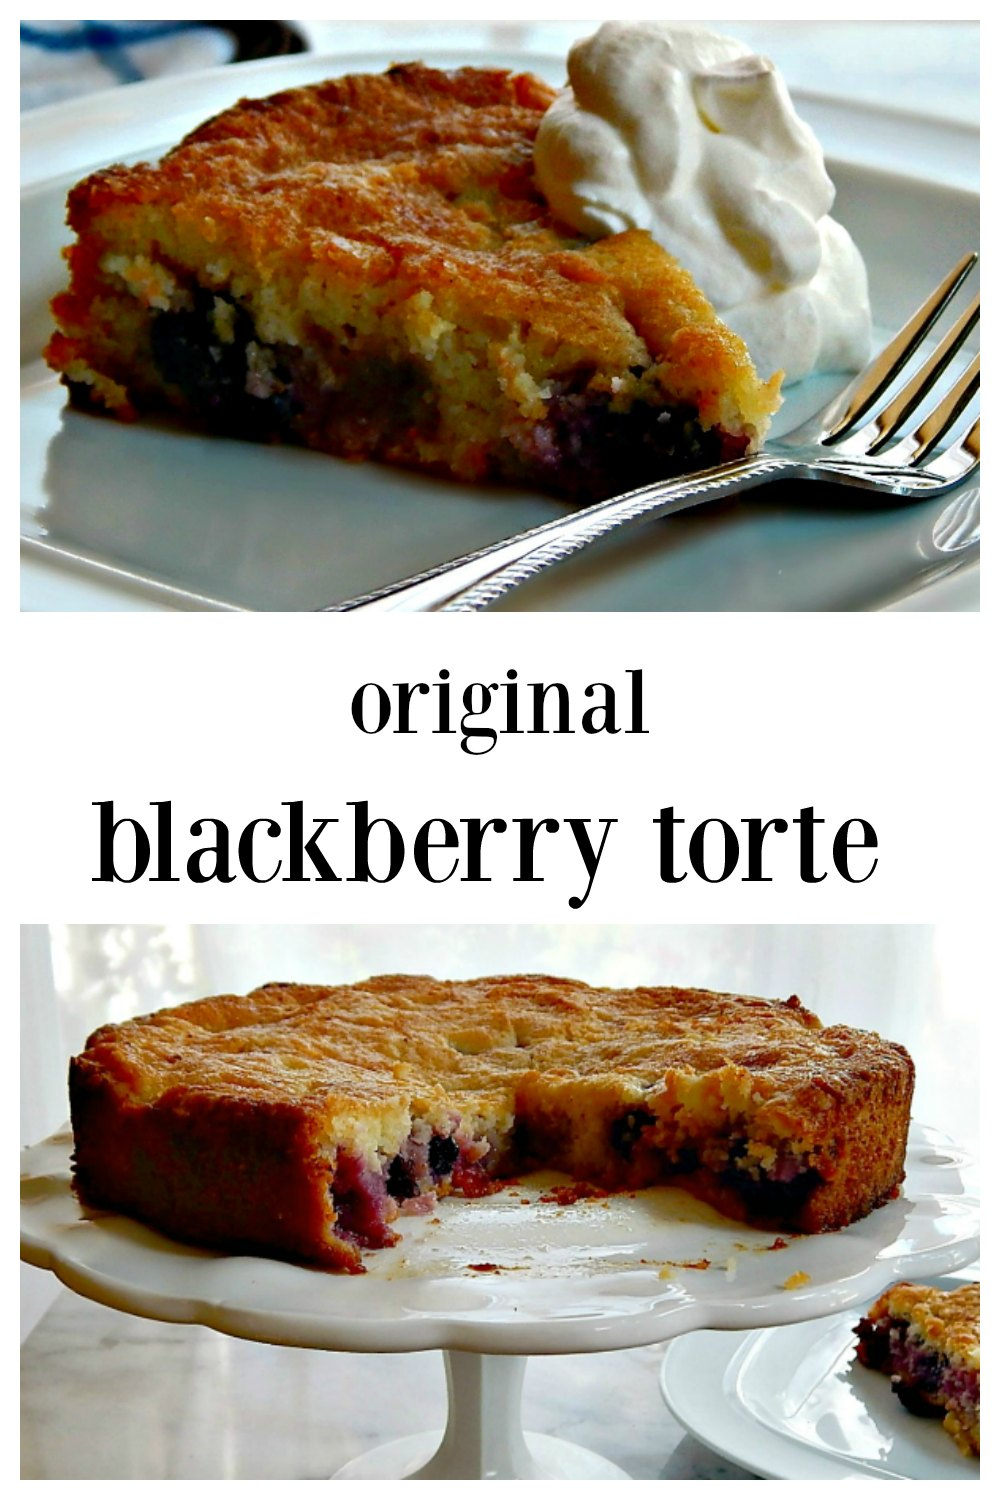 The Original Blackberry Torte is a super easy simple little cake that can be made all summer long at the drop of a hat; Use your choice of fruits! Adapted from Marion Burros of the New York Times. #BlackberryTorte #BlackberryCake